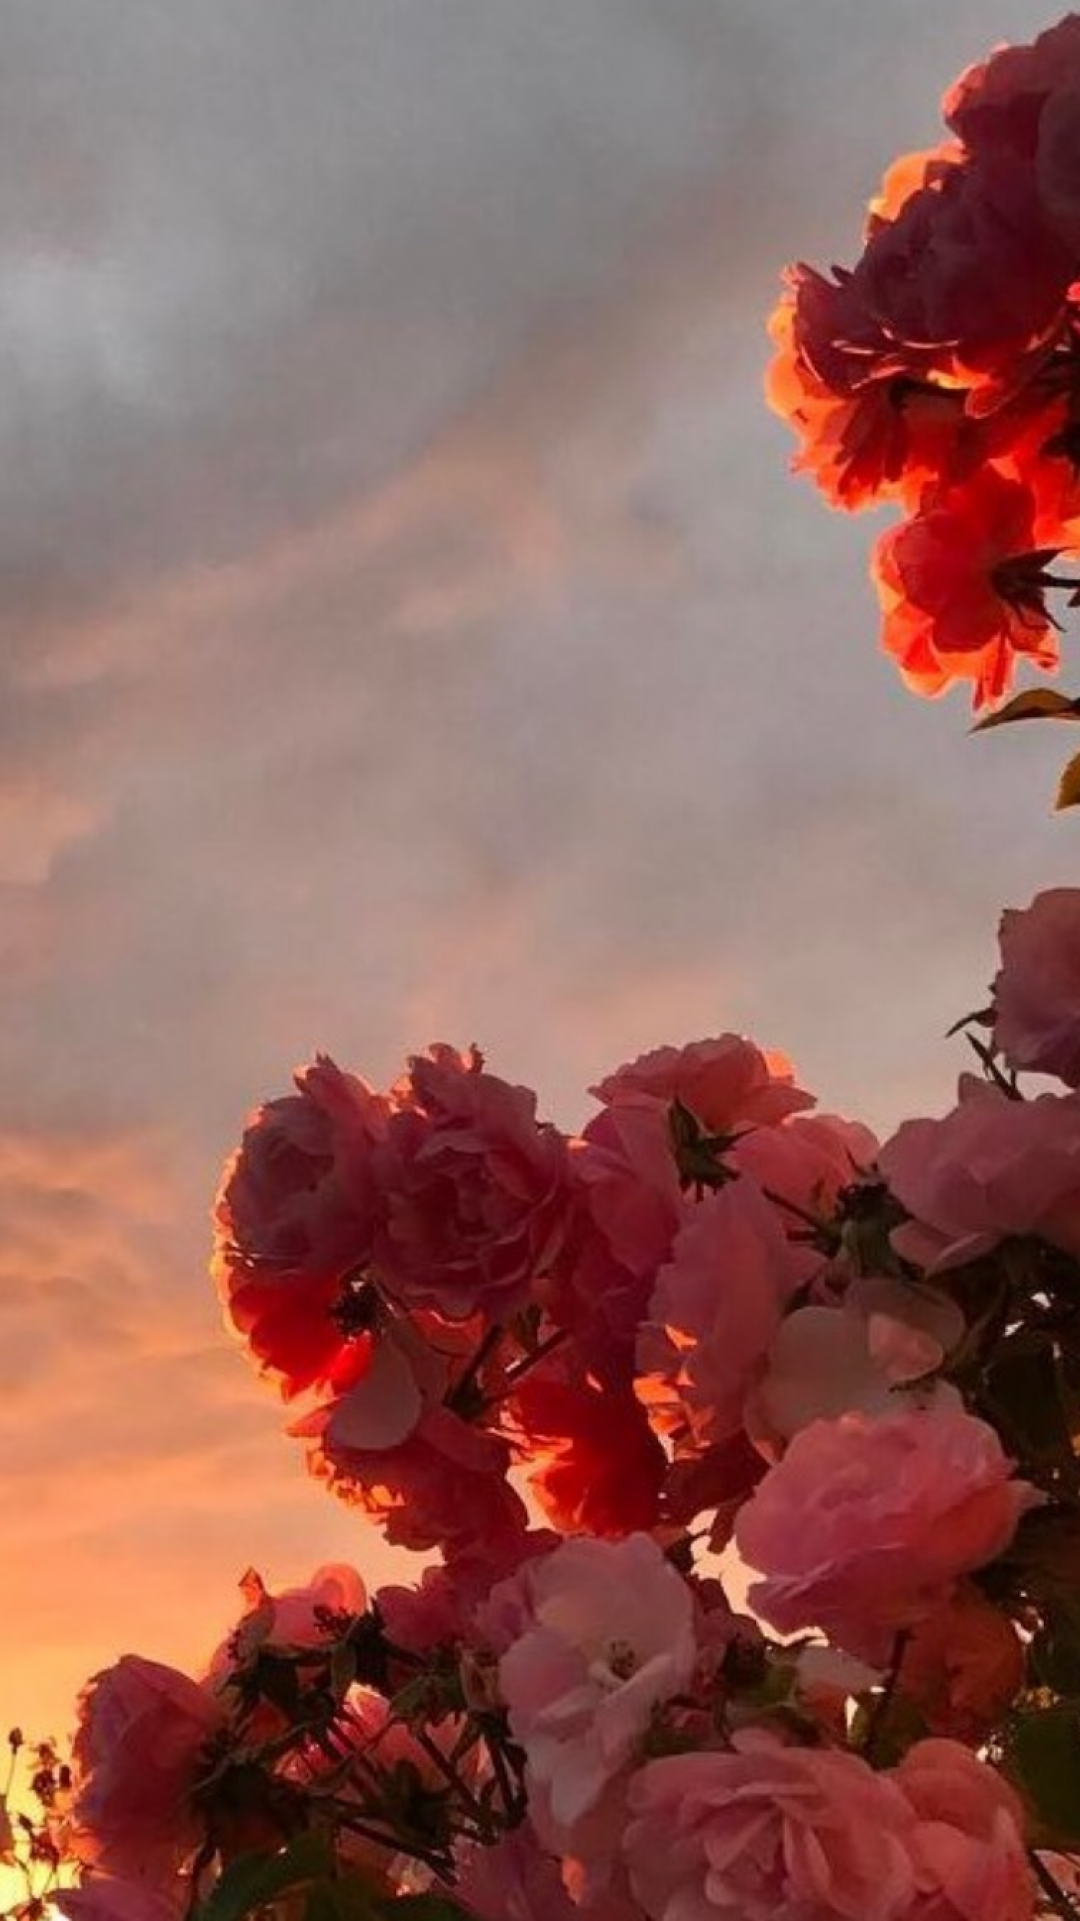 190+ Aesthetic Flowers - Android, iPhone, Desktop HD ...